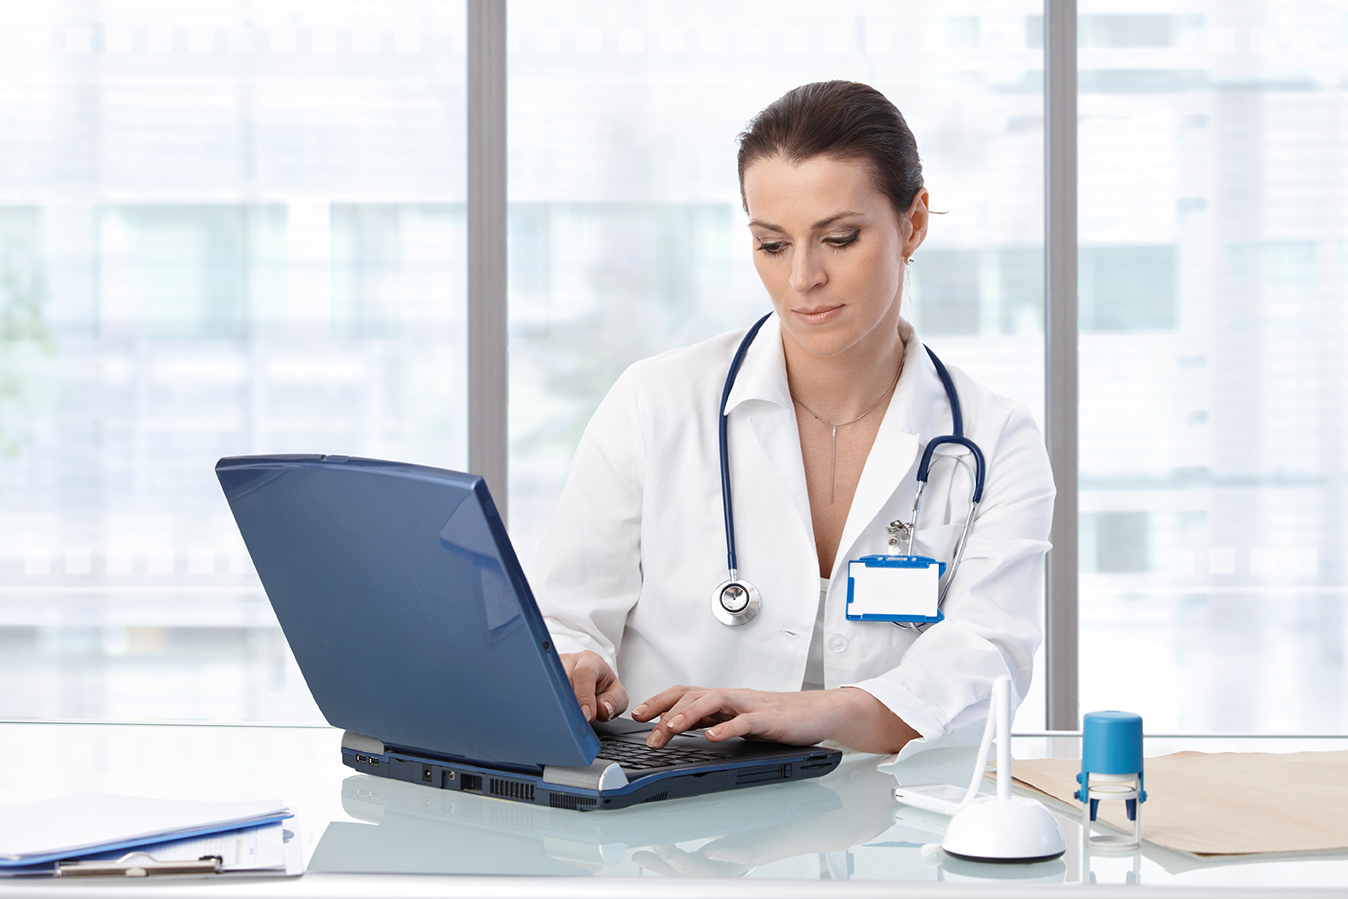 American Association of Nurse Practitioners - Technology